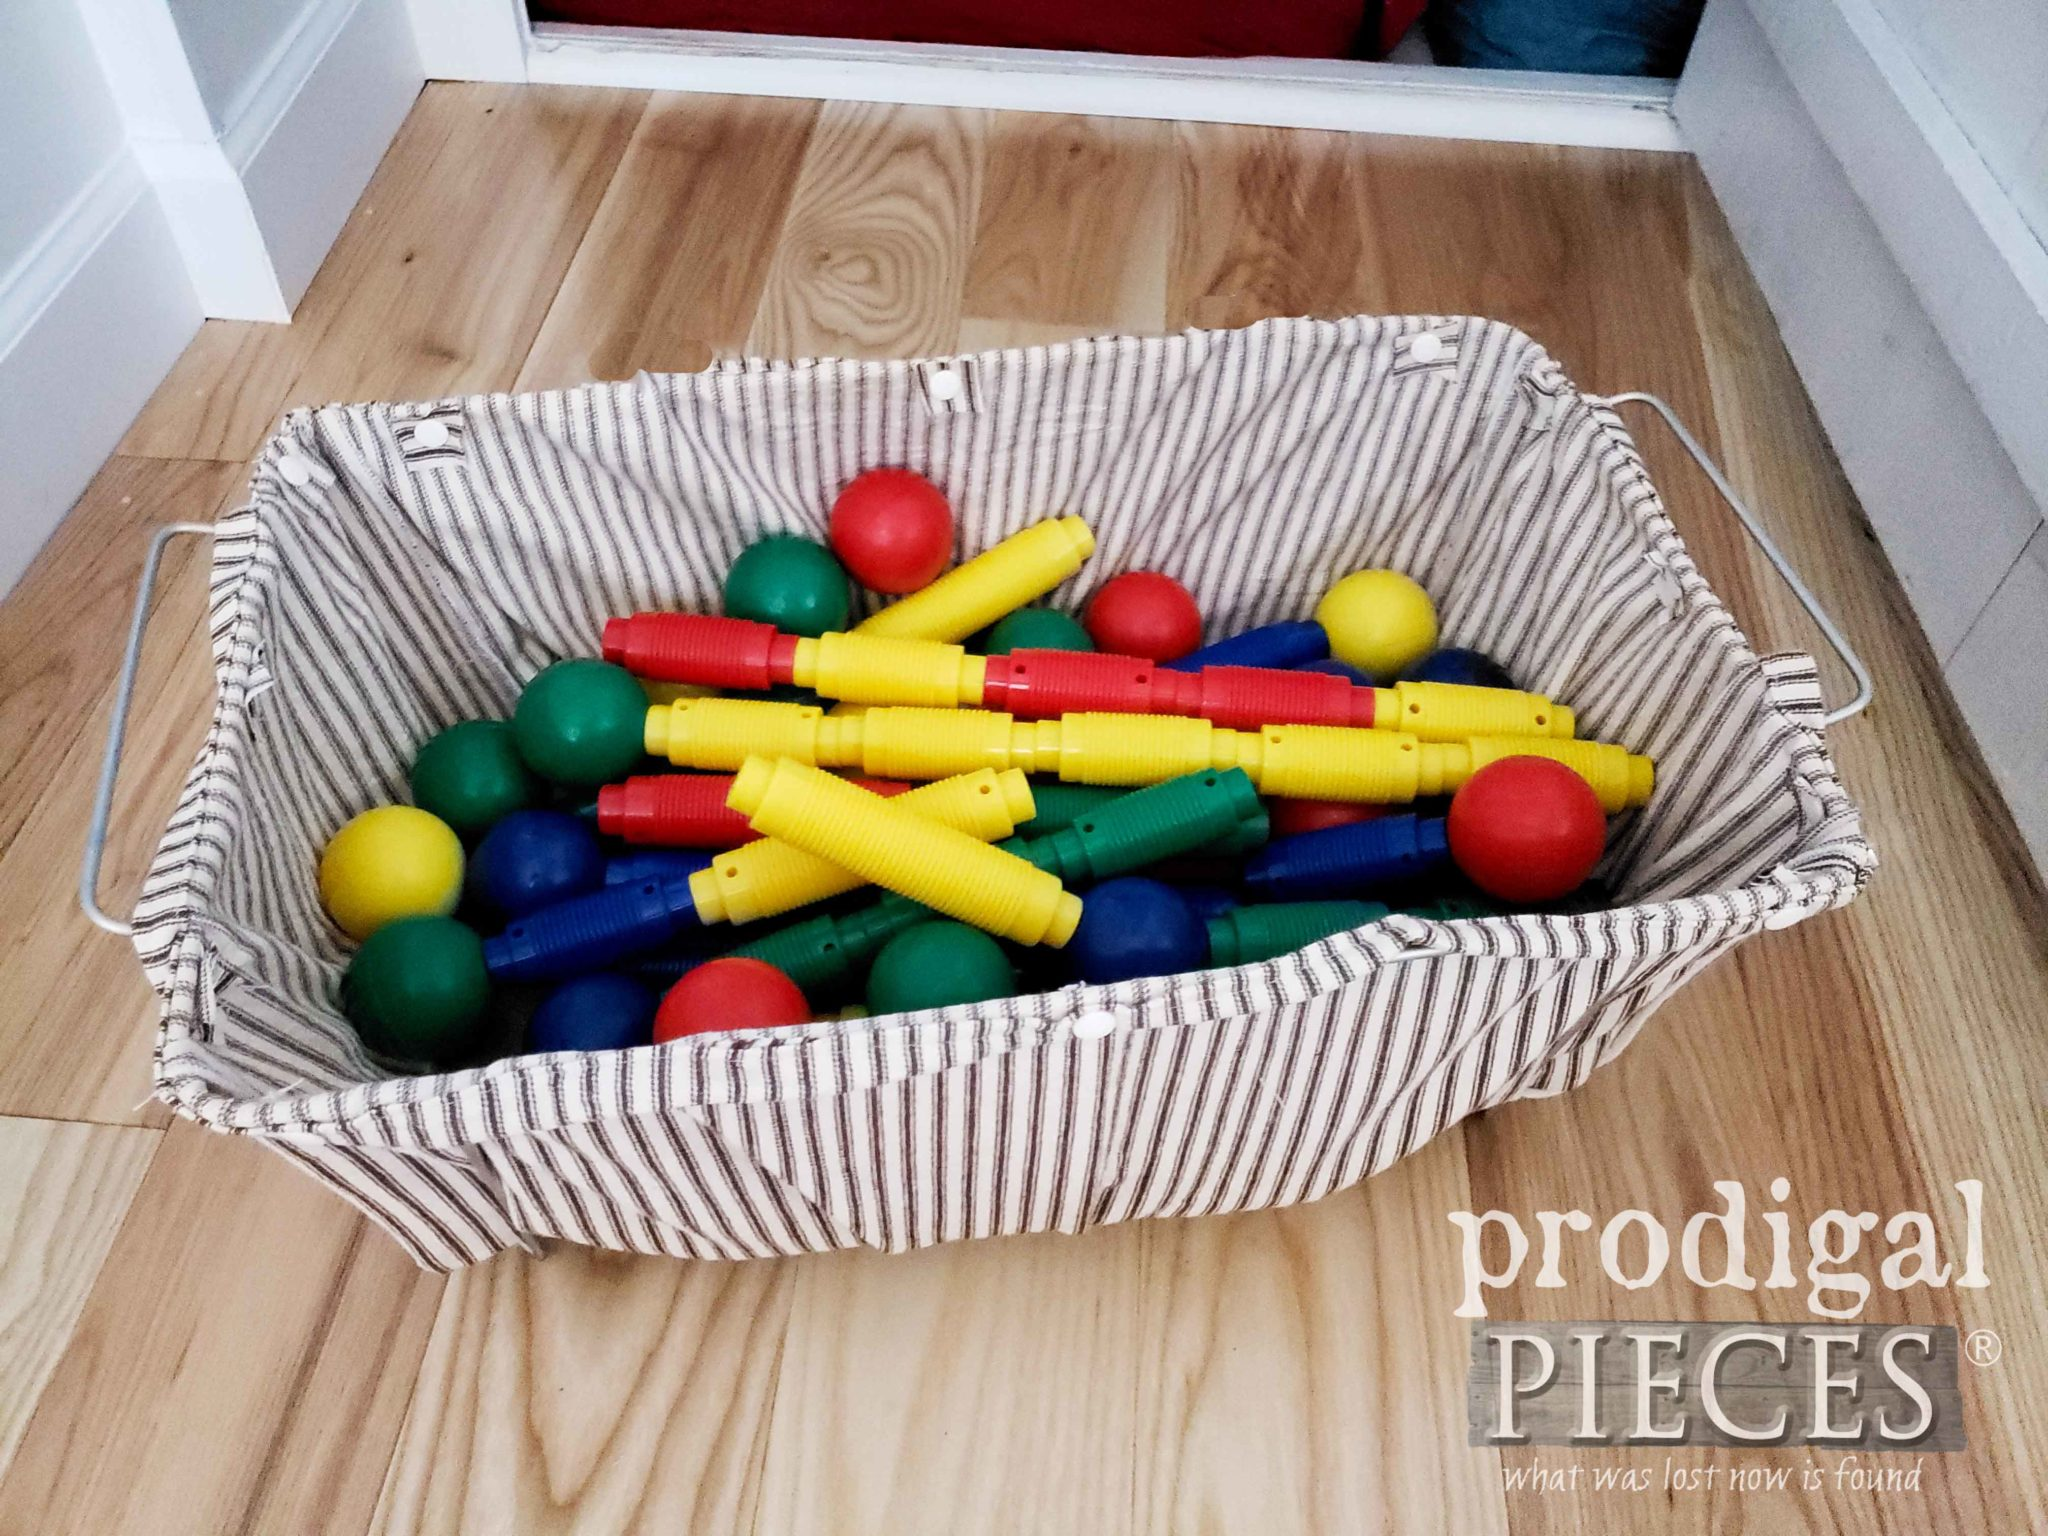 Wire Basket Liner ~ DIY Storage by Larissa of Prodigal Pieces | prodigalpieces.com #prodigalpieces #diy #storage #home #homedecor #handmade #farmhouse